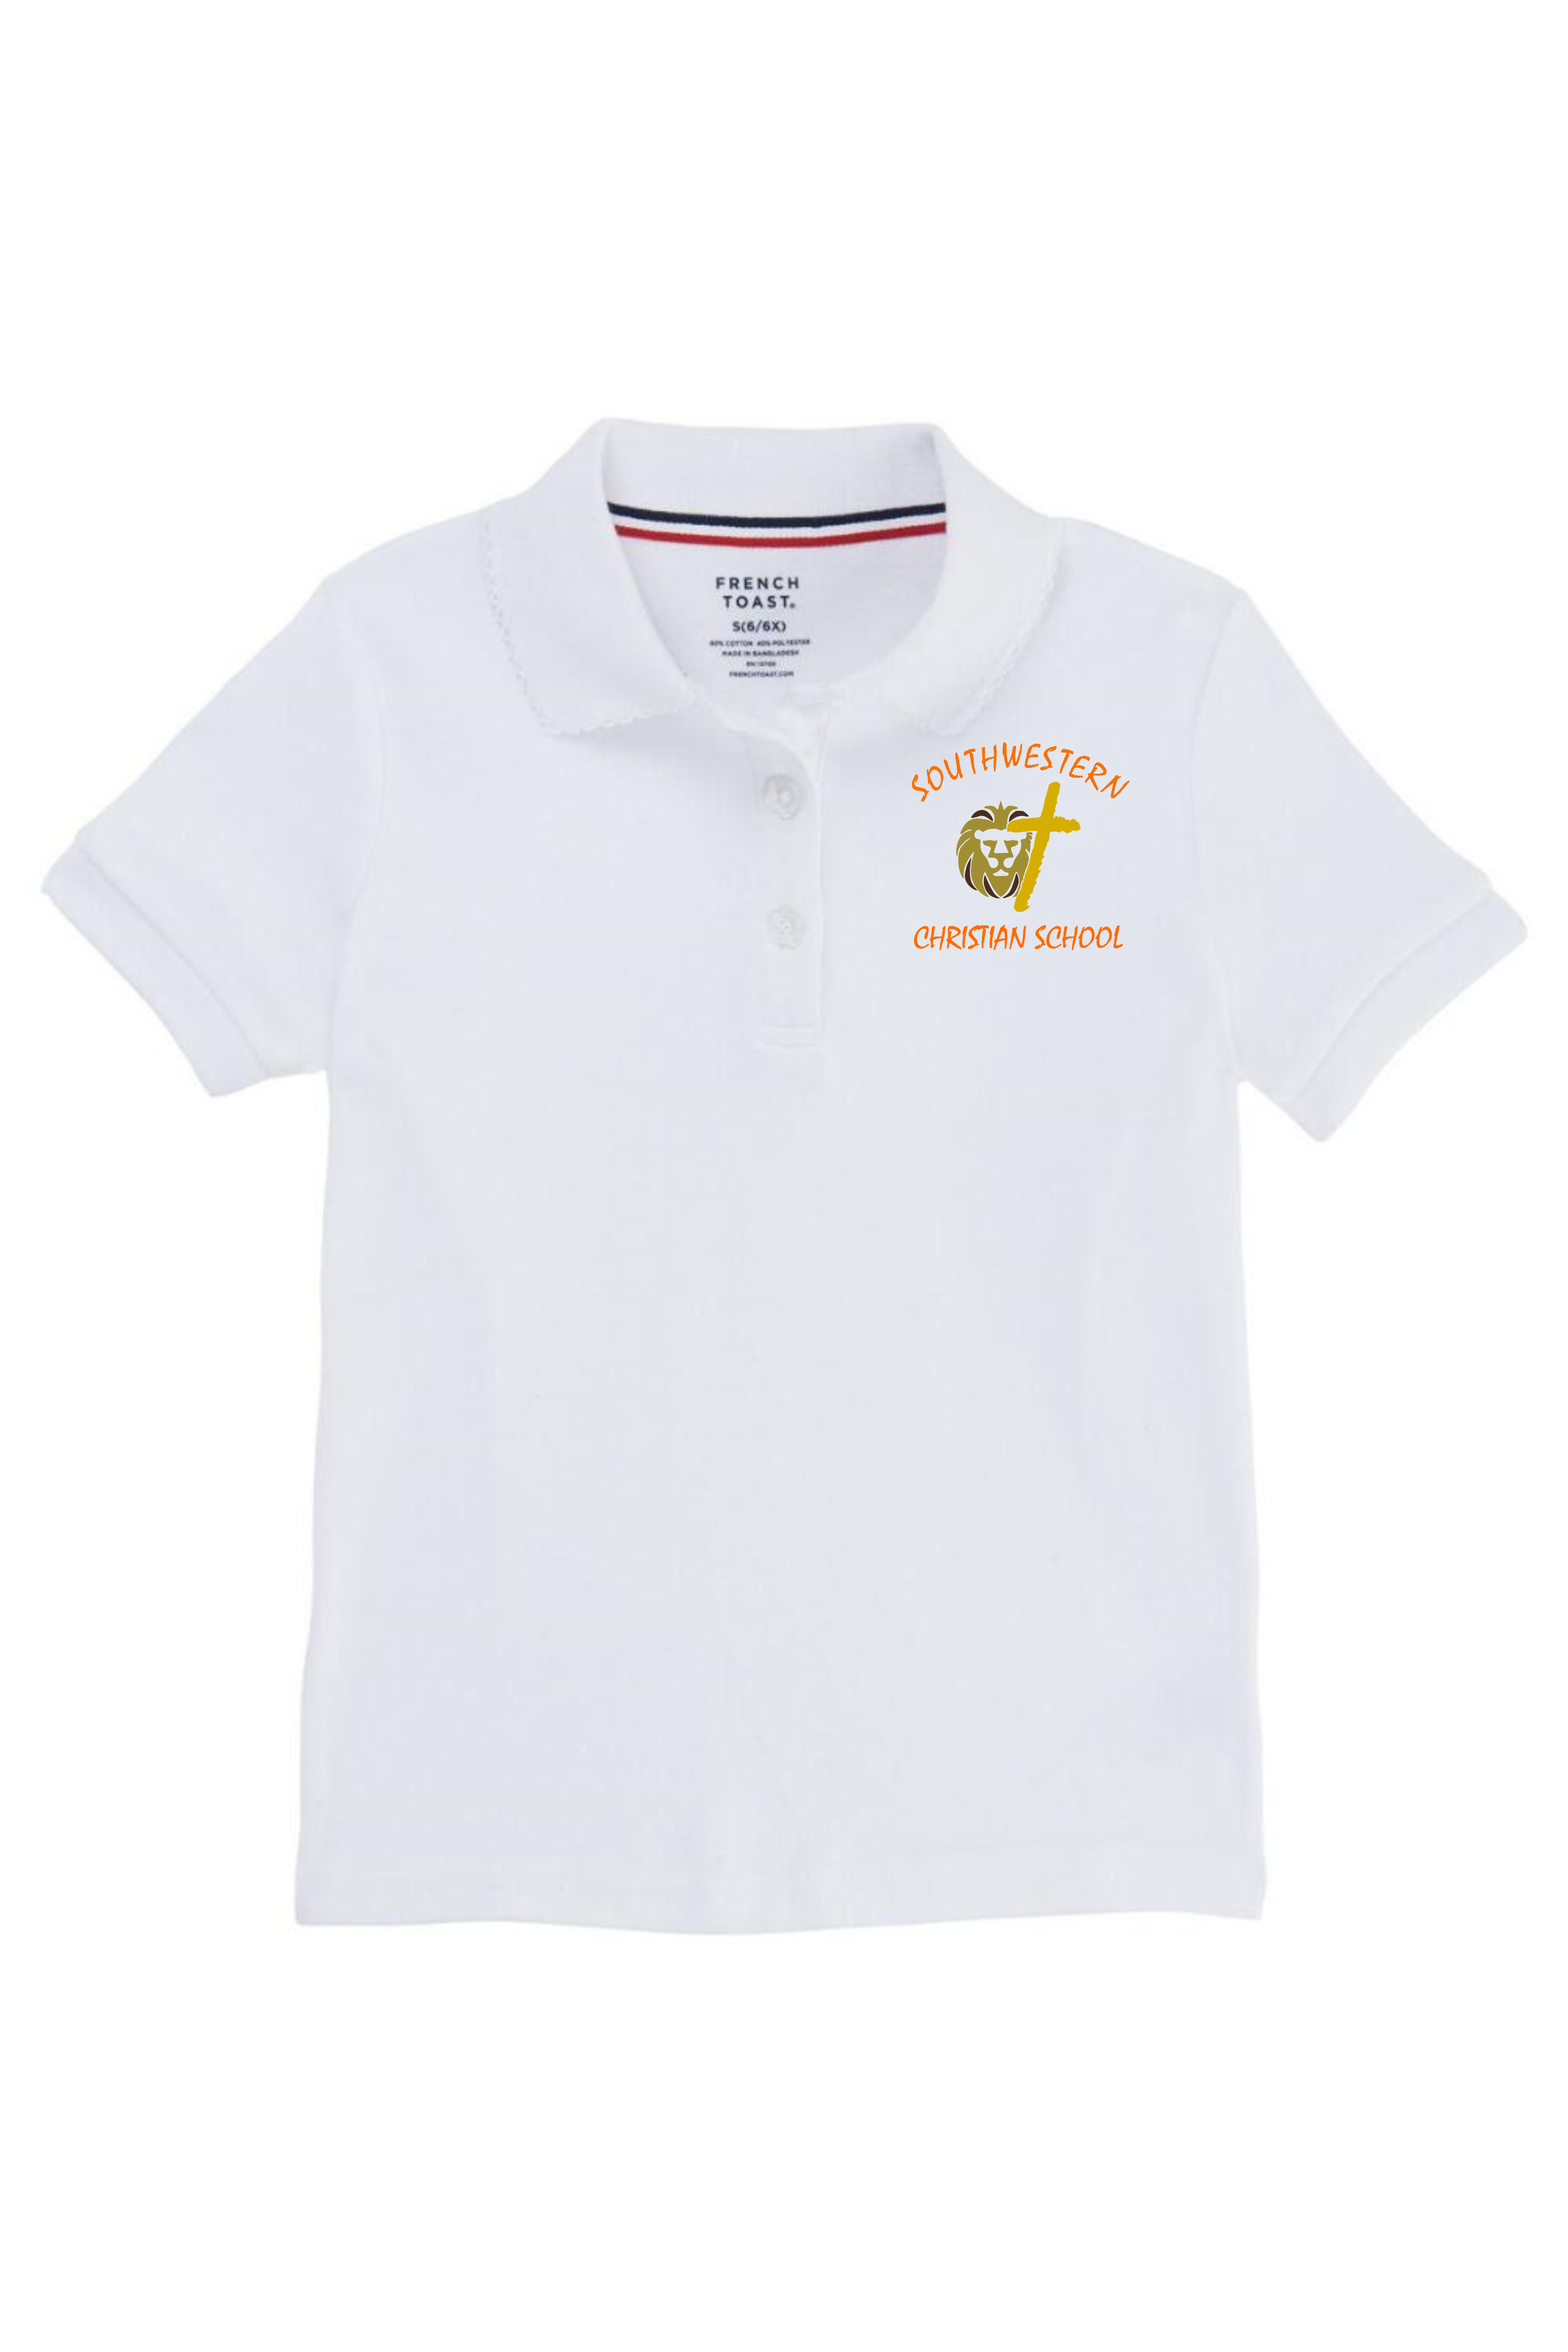 French Toast Girl's Cotton Short Sleeve Polo - SWCS (Polo Size: SM - 6/6X, French Toast Polo Color: White - SWCS)